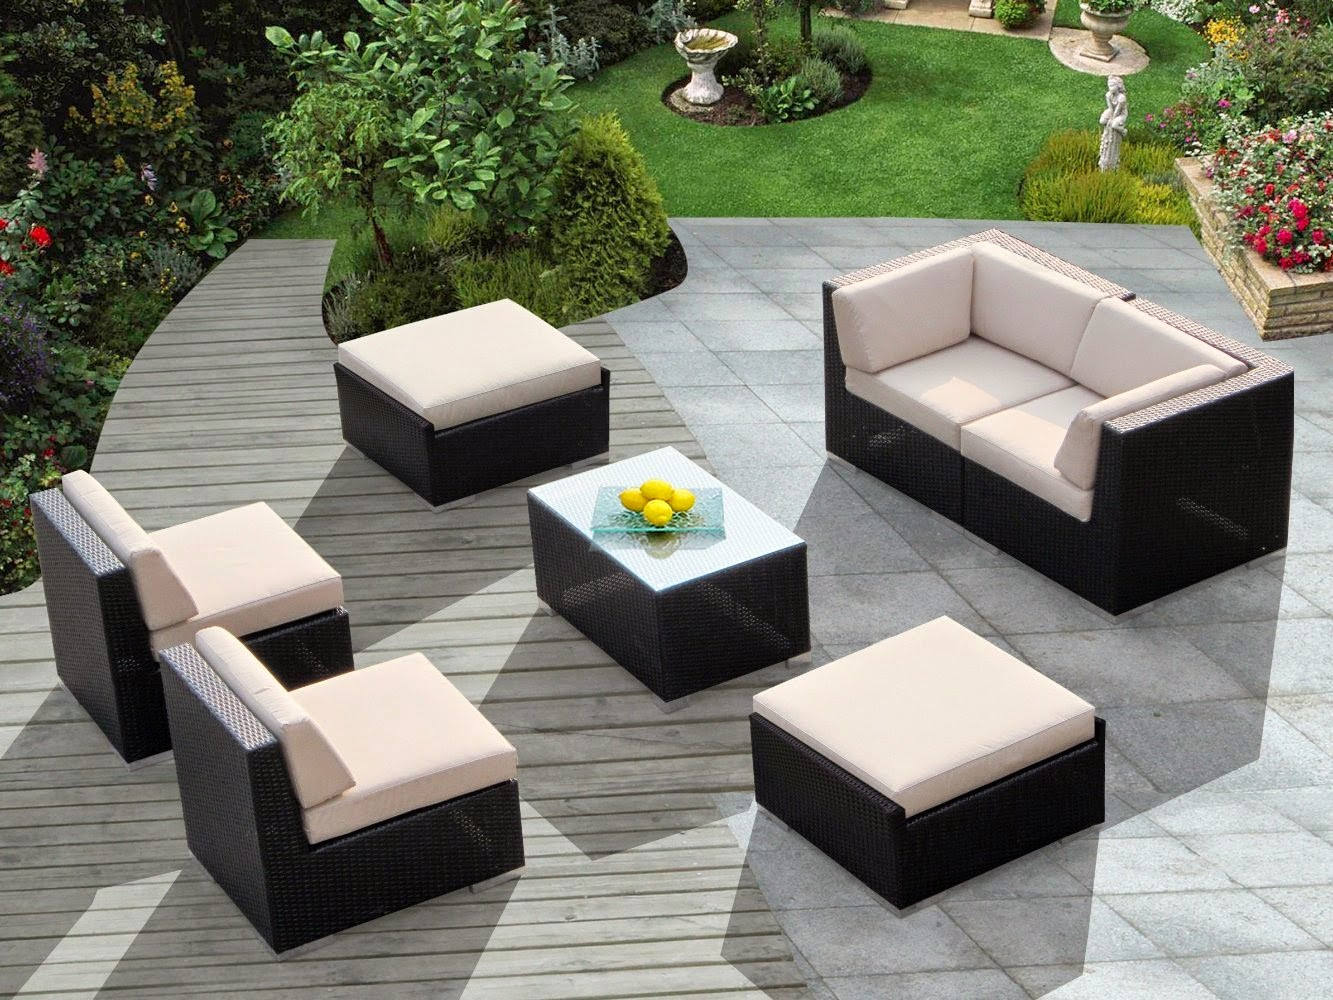 Best ideas about Ohana Patio Furniture . Save or Pin Genuine Ohana Outdoor Patio Furniture Gorgeous Outdoor Now.